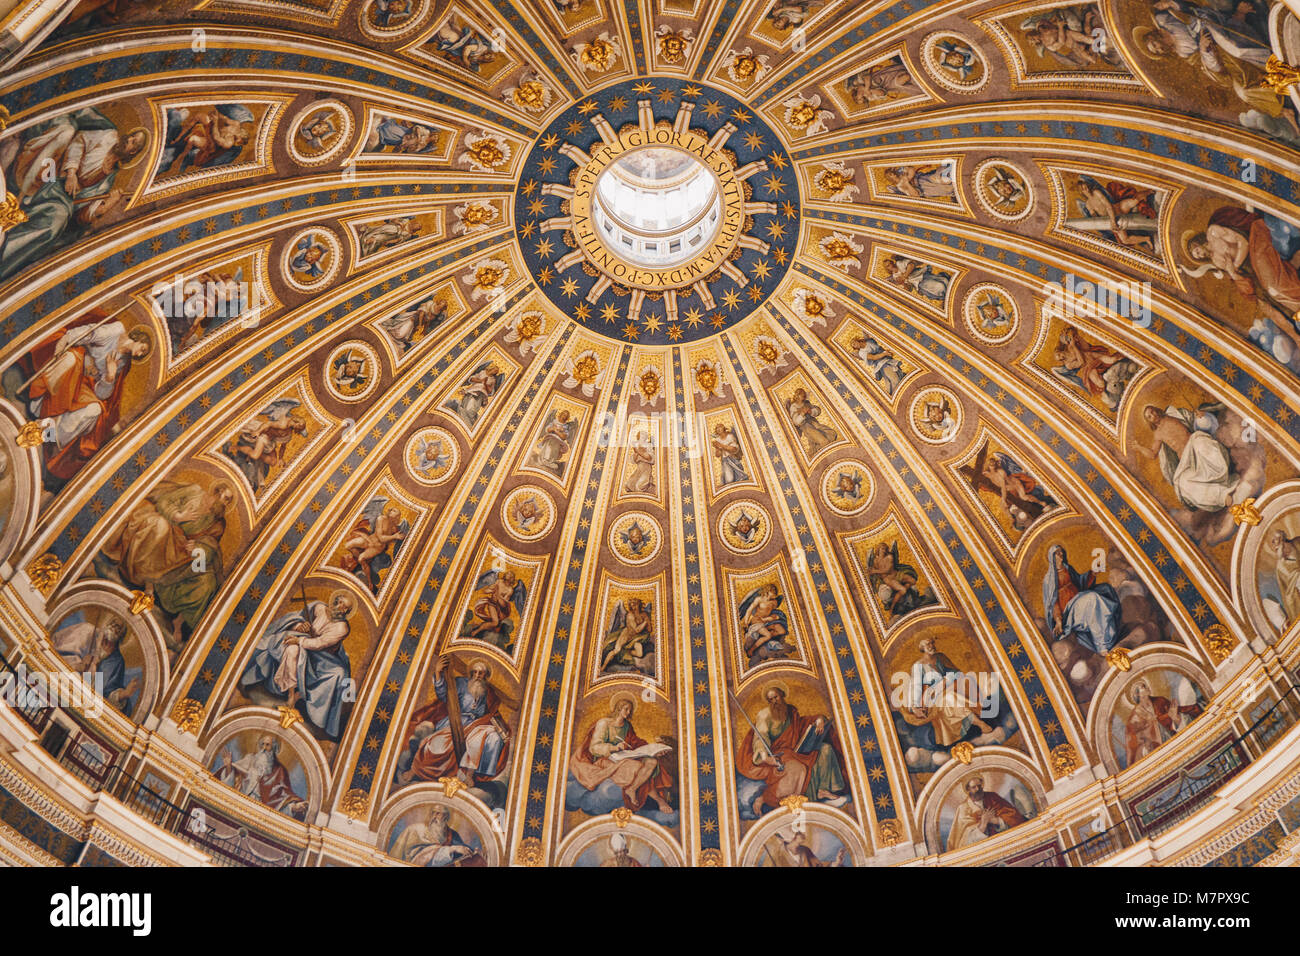 The dome of St. Peter's Basilica Cathedral in Rome, Vatican - Stock Image